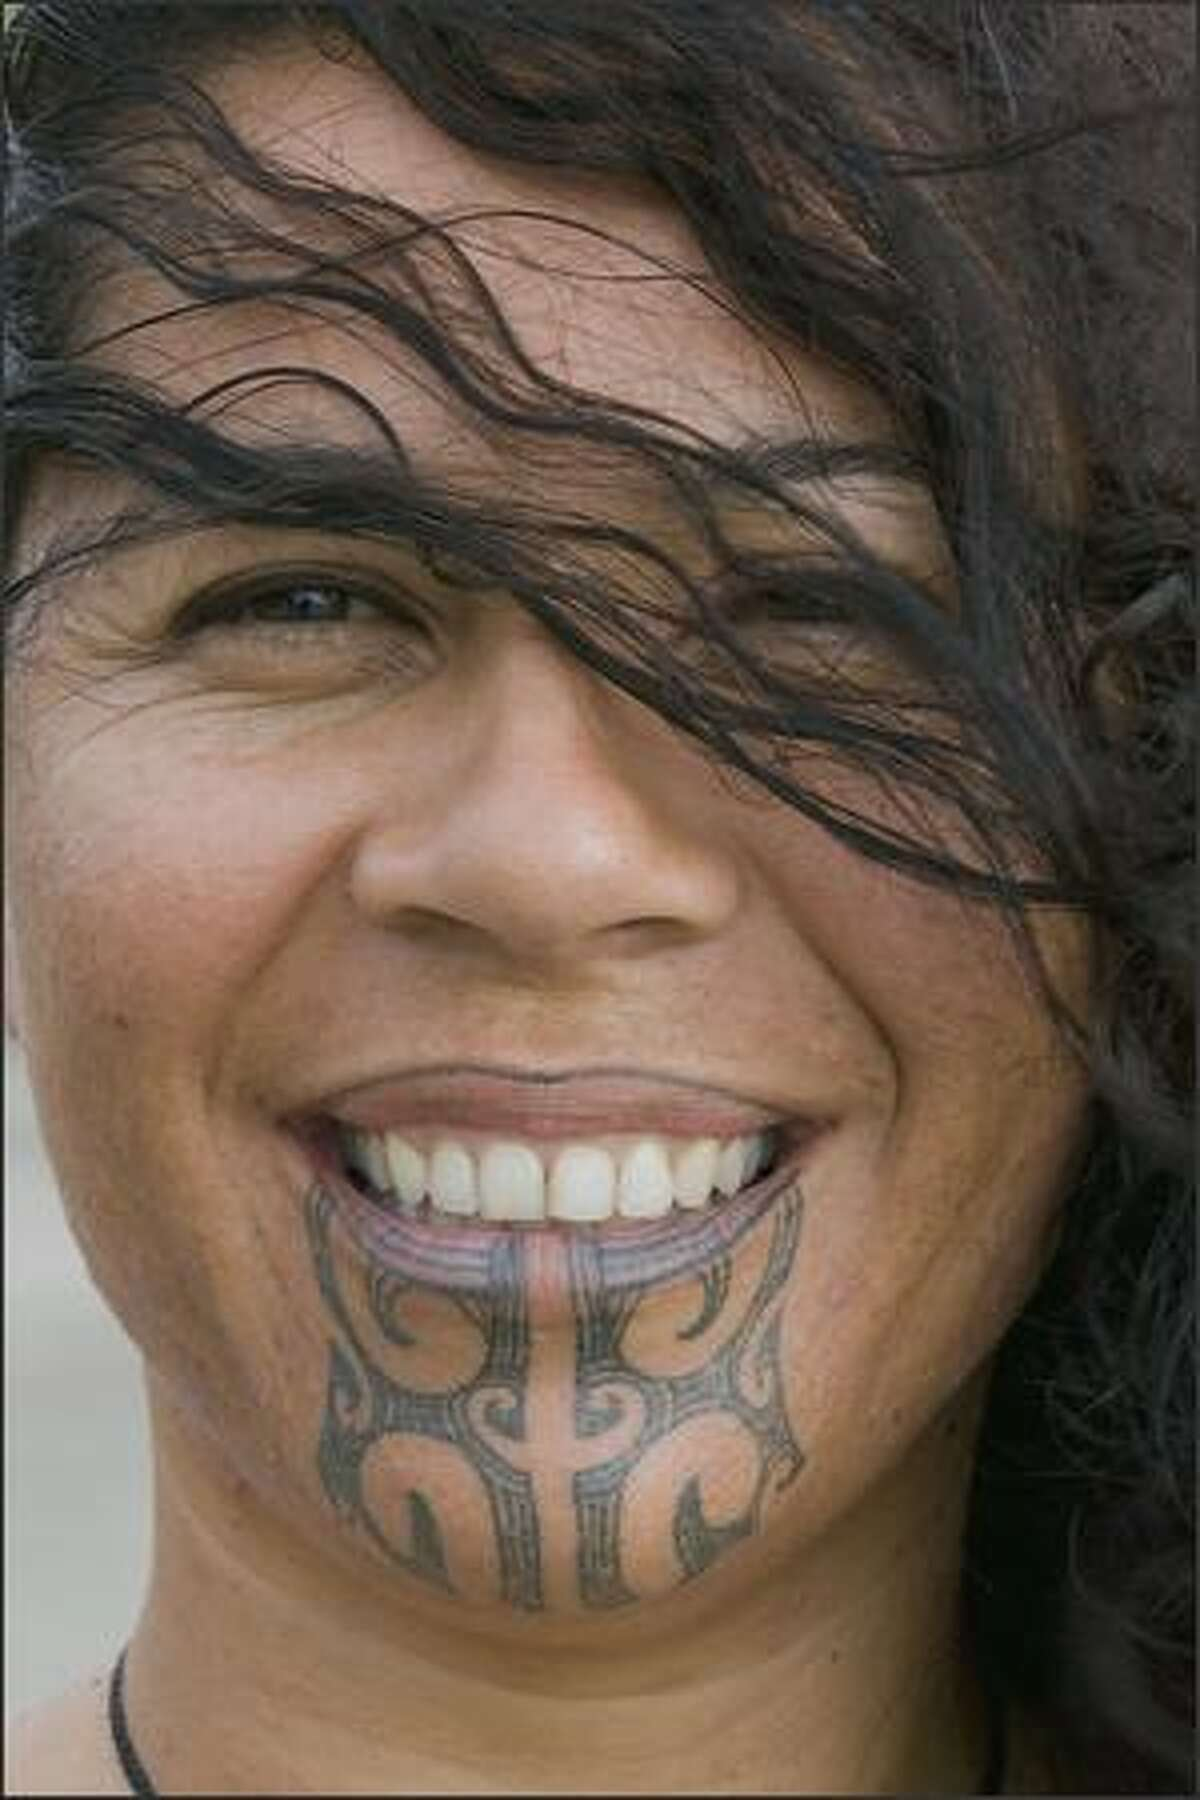 Art Wolfe's photo of a woman and her tattoo in New Zealand from the TV series